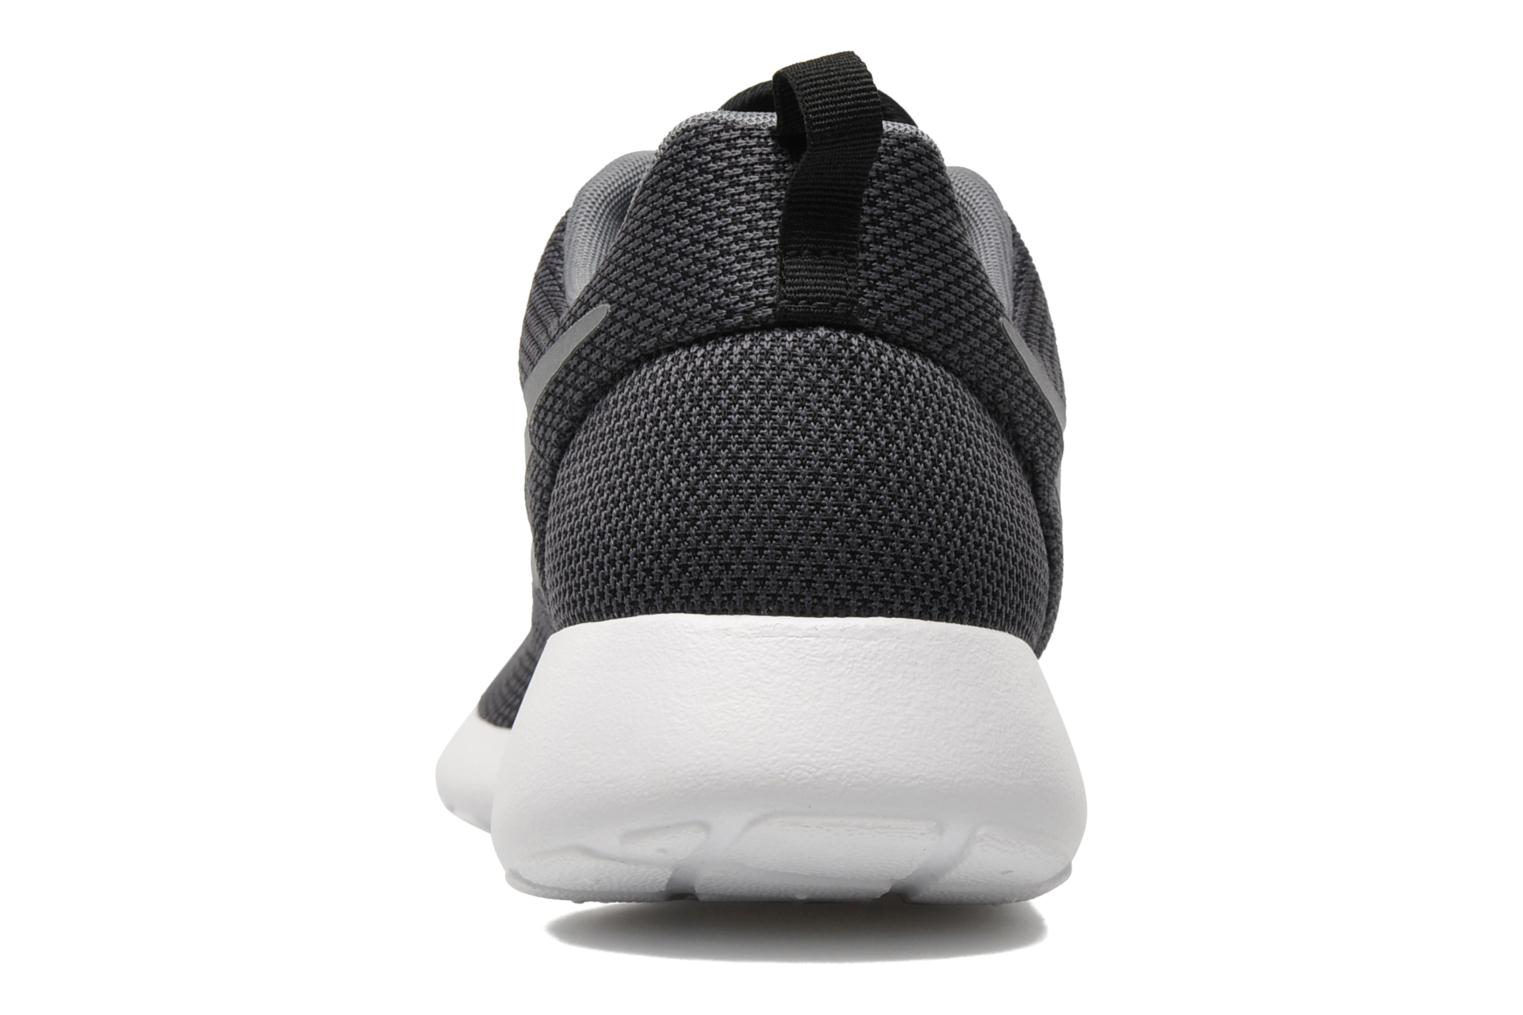 Nike Roshe One Black/Cool Grey-White